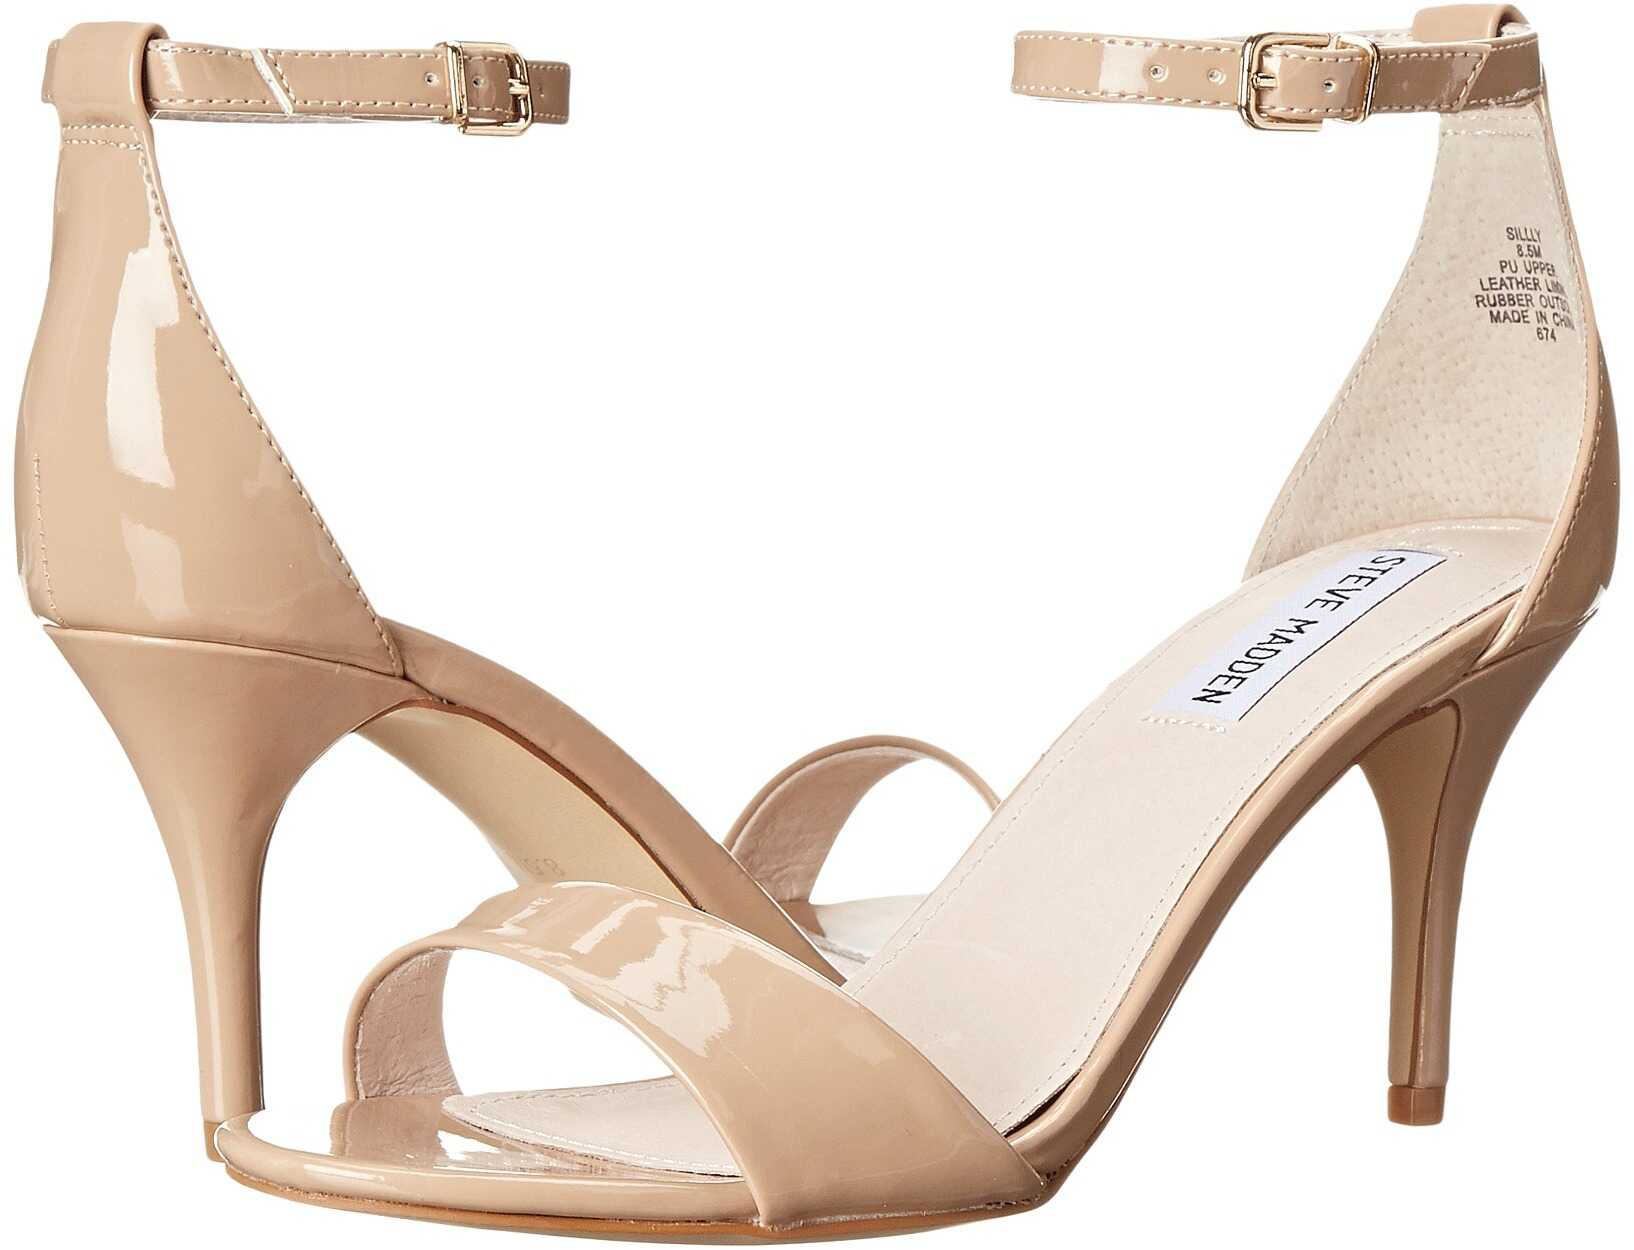 Steve Madden Exclusive - Sillly Sandal Blush Patent